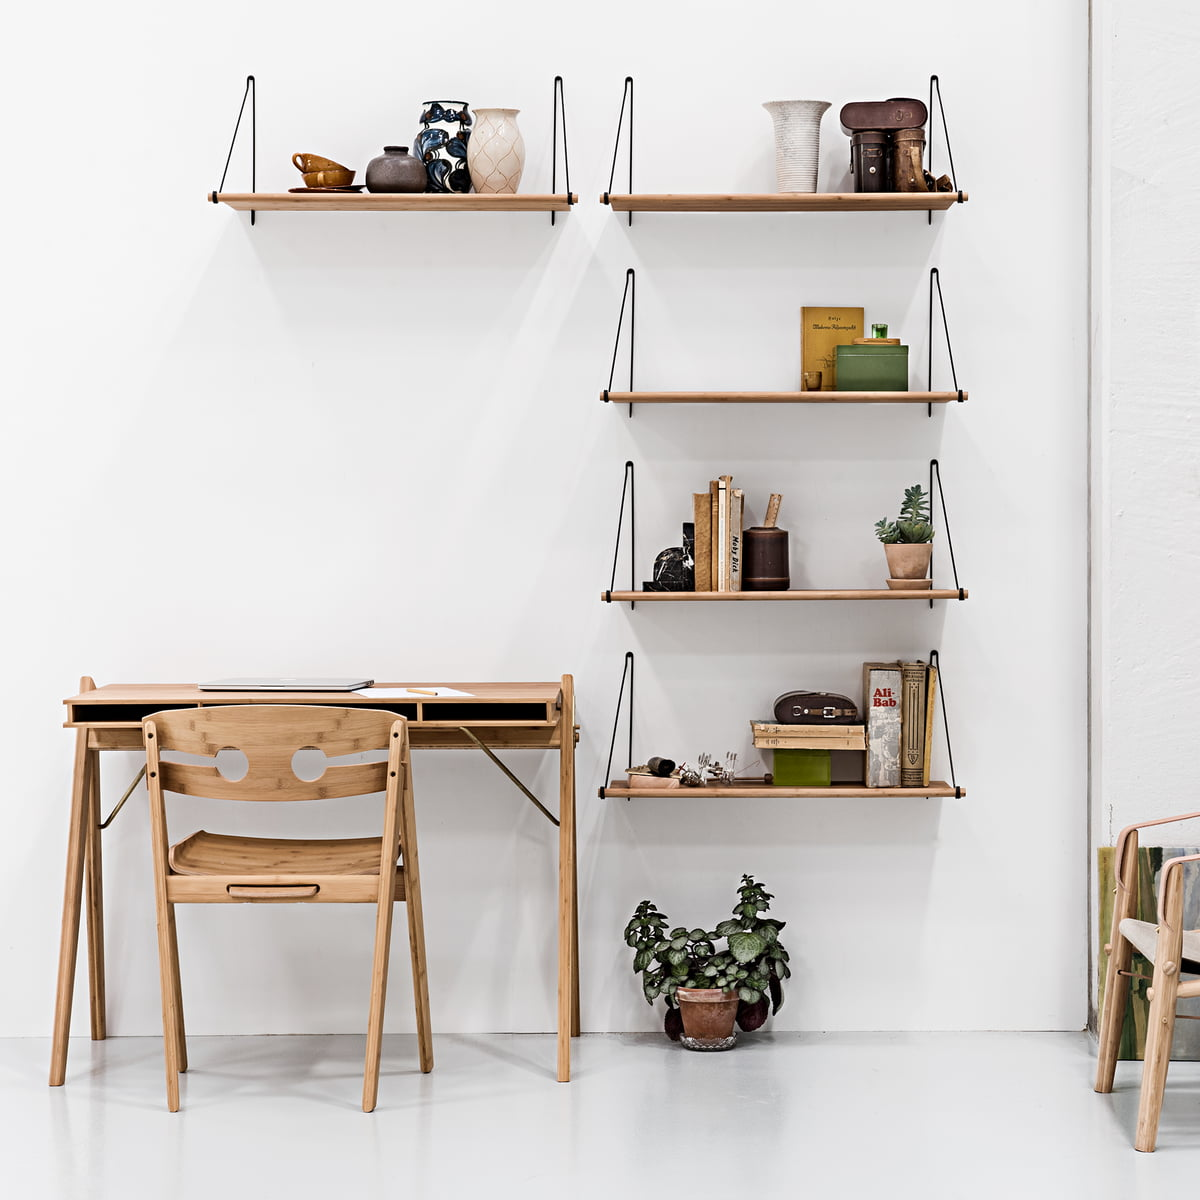 Field desk von we do wood im wohndesign shop for Wohndesign shop